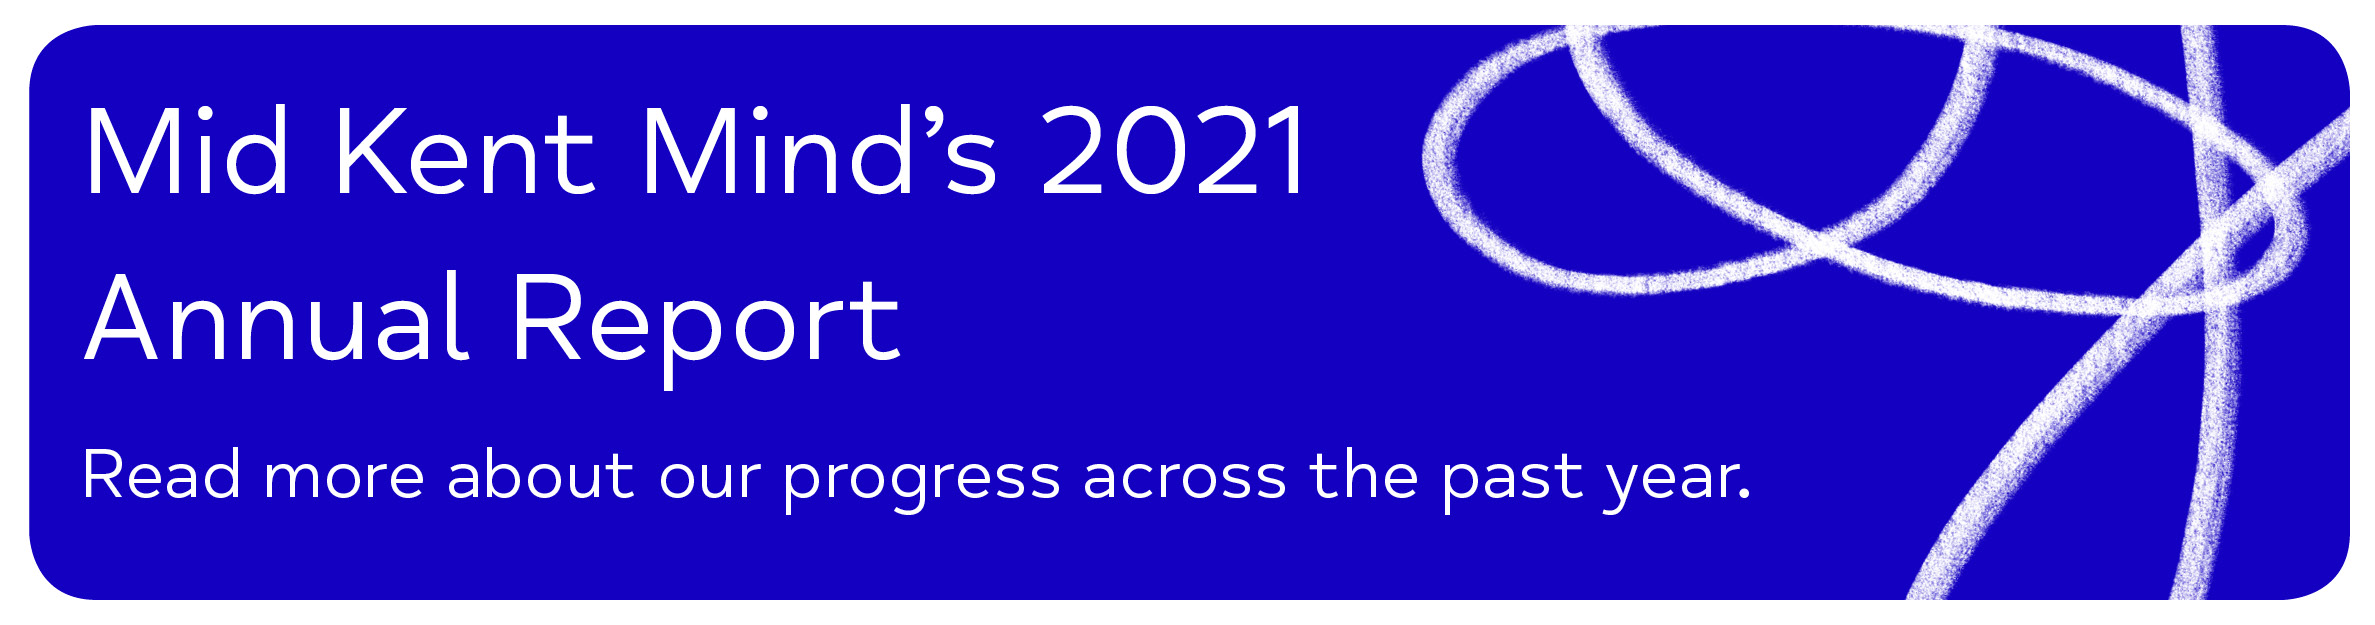 Mid Kent Mind's 2021 Annual Report Read more about our progress across the past year.